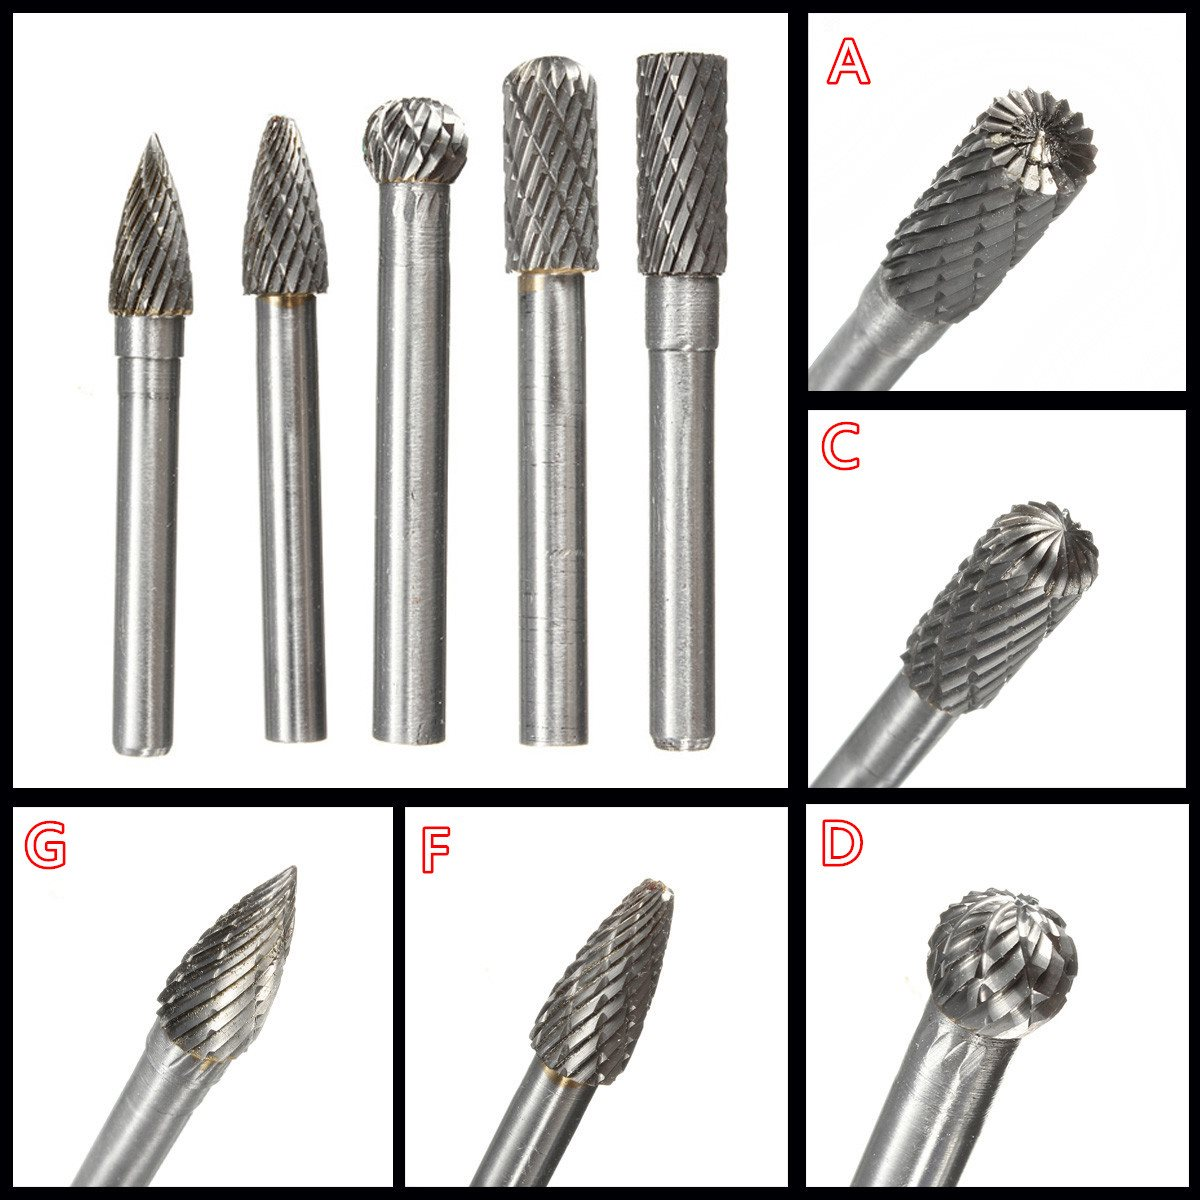 1PC Type A/C/D/F/G 6*8MM Head Tungsten Carbide Rotary Tool Point Burr Die Grinder Abrasive Tools Drill Milling Carving Bit Tools